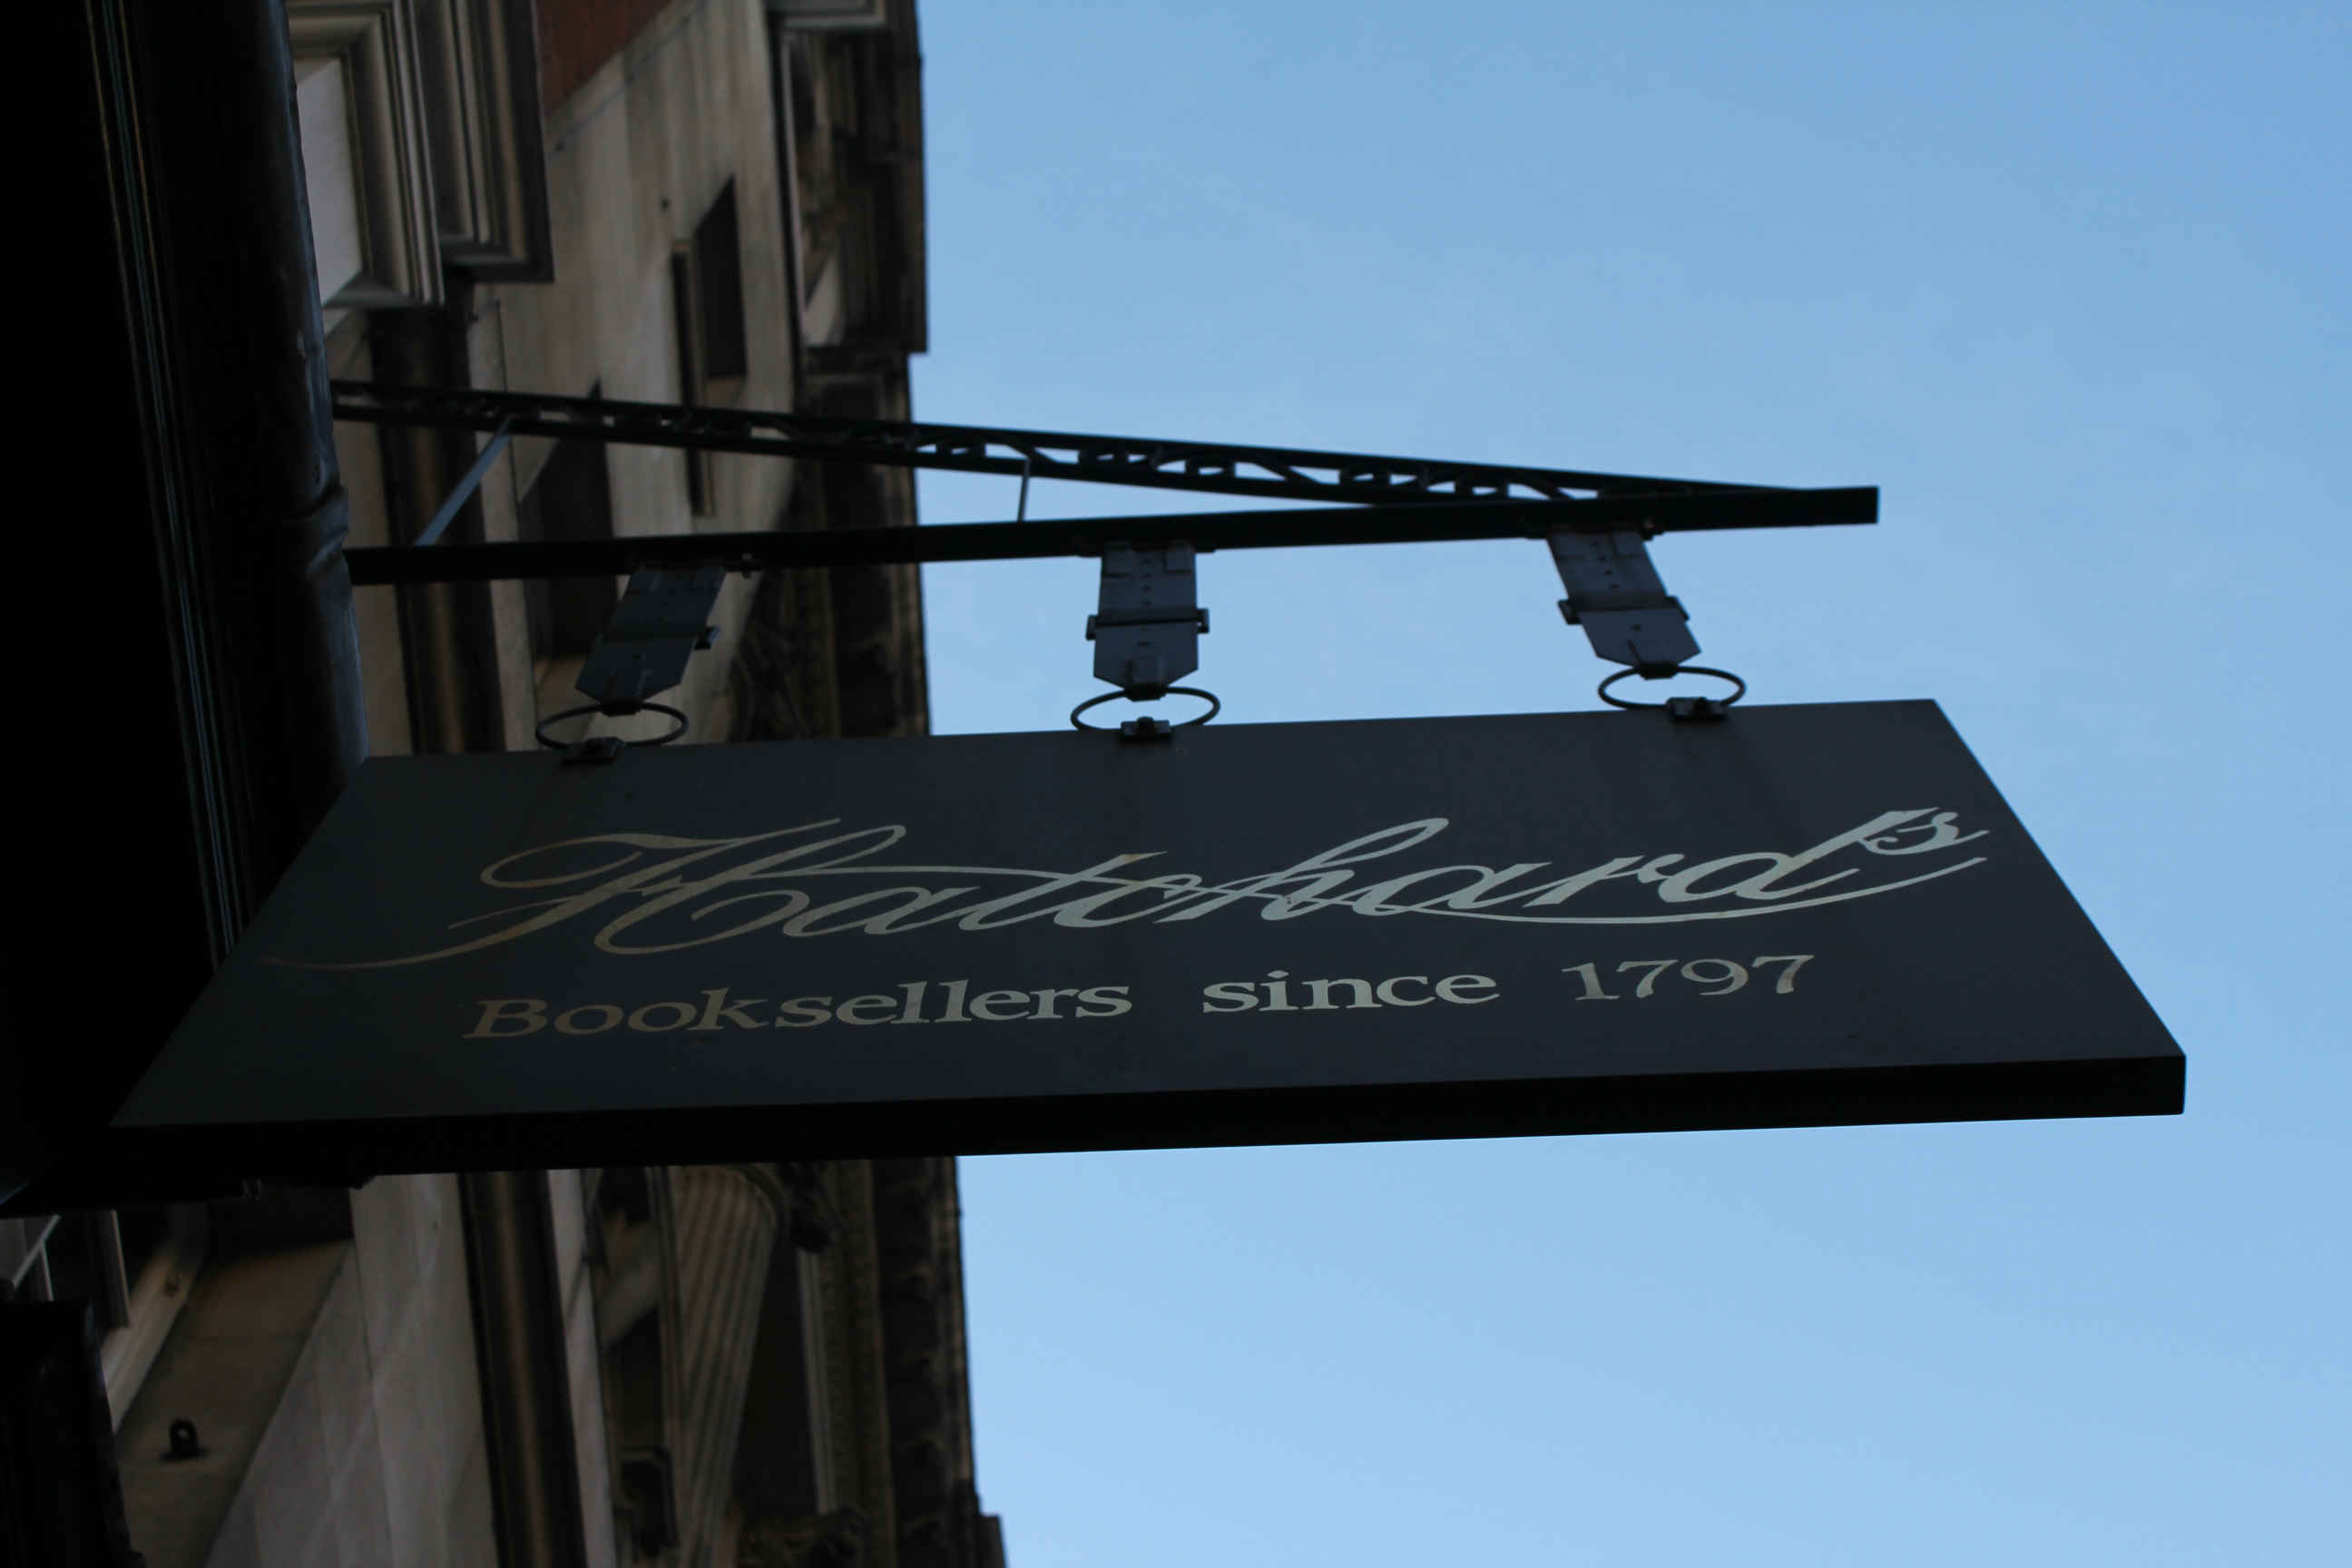 London's oldest remaining booksellers